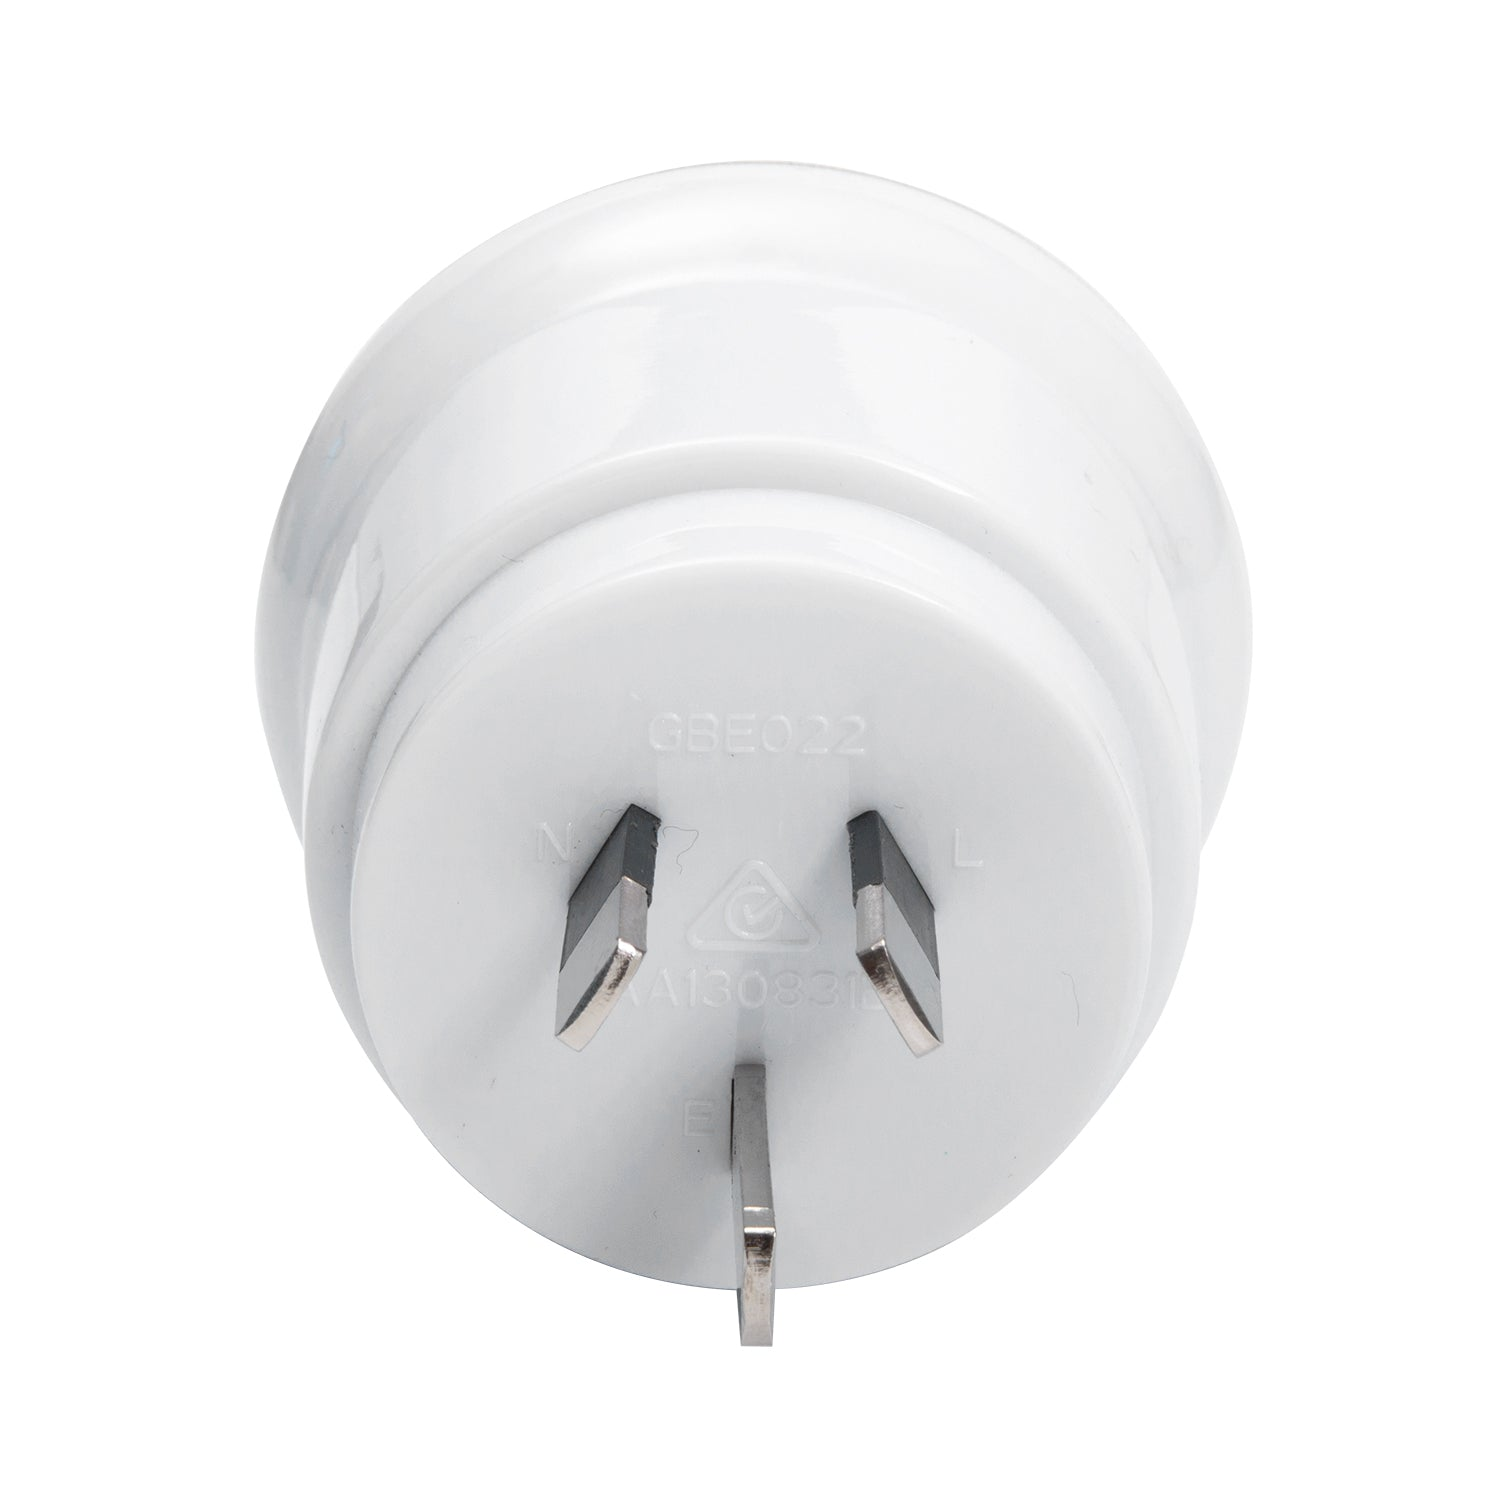 Inbound Travel Adaptor - Medium - globite